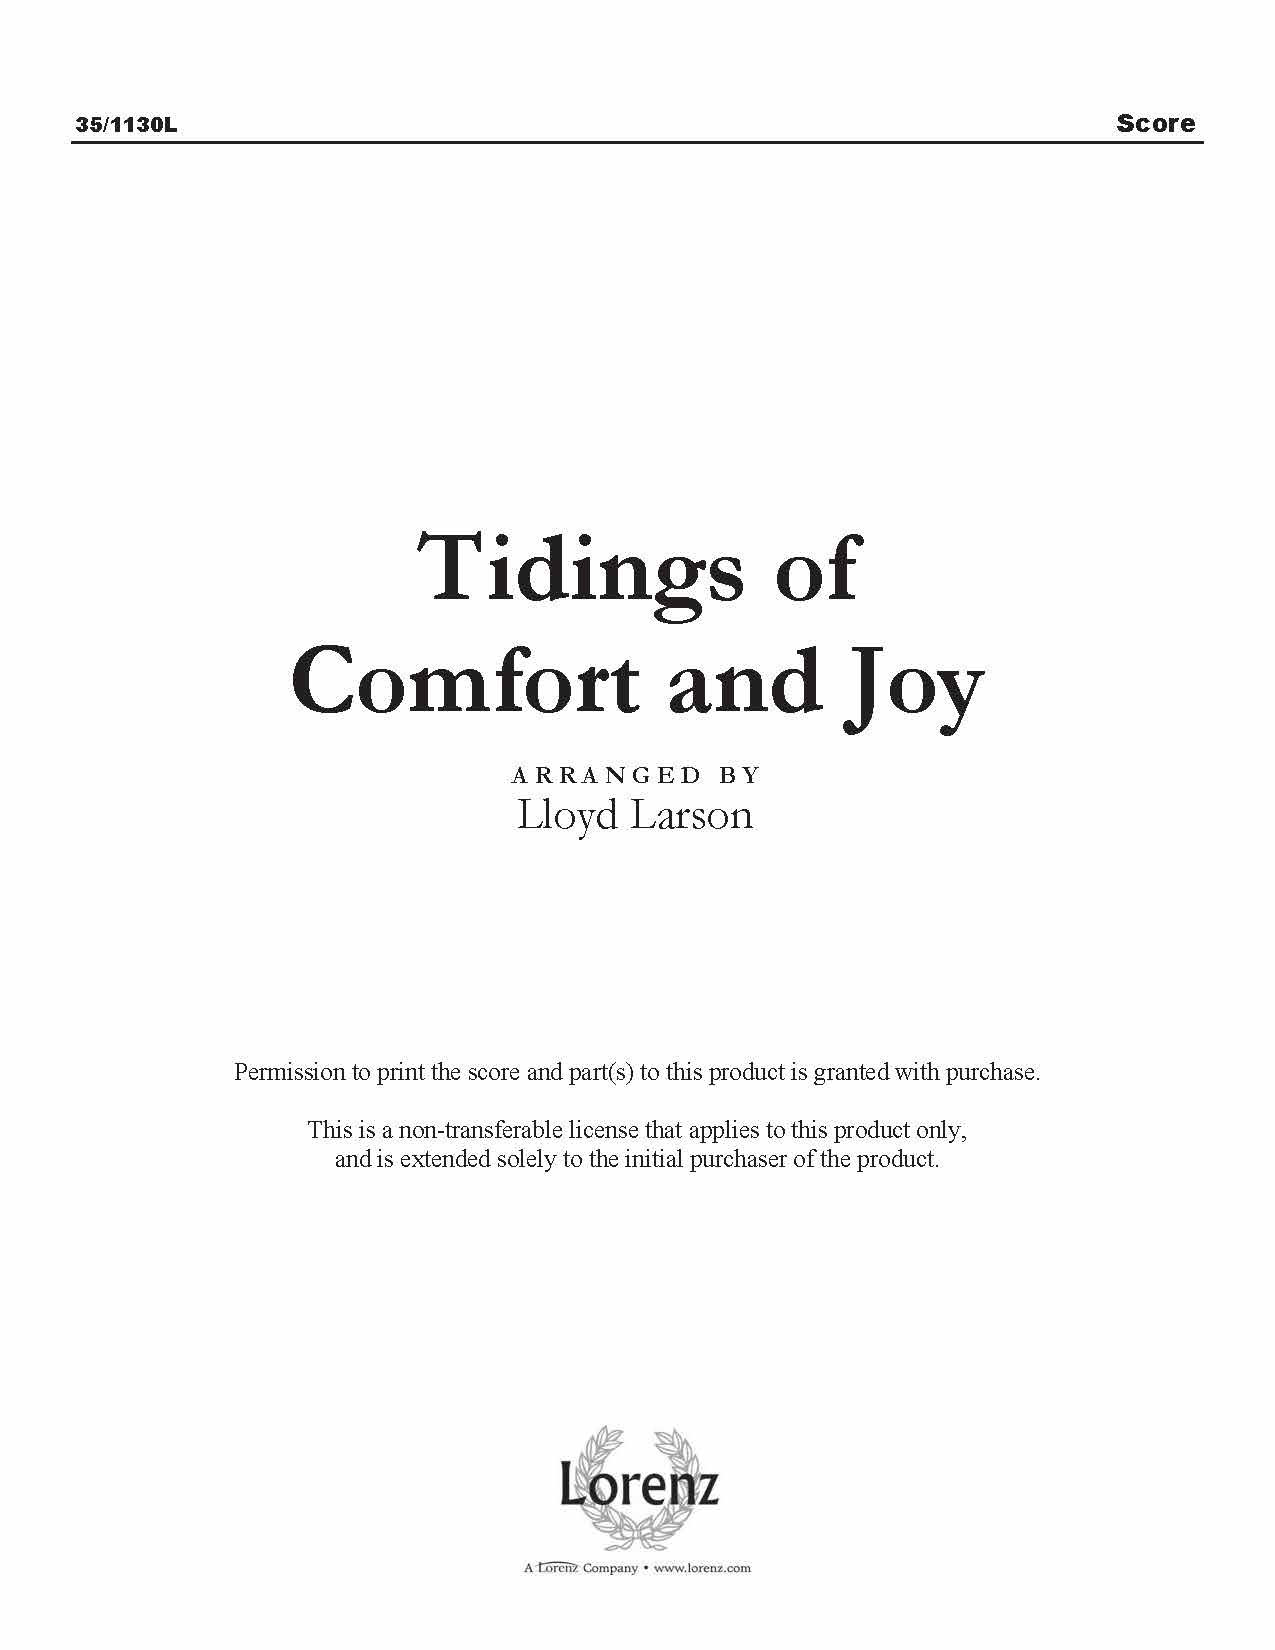 Tidings of Comfort and Joy (Digital Delivery)